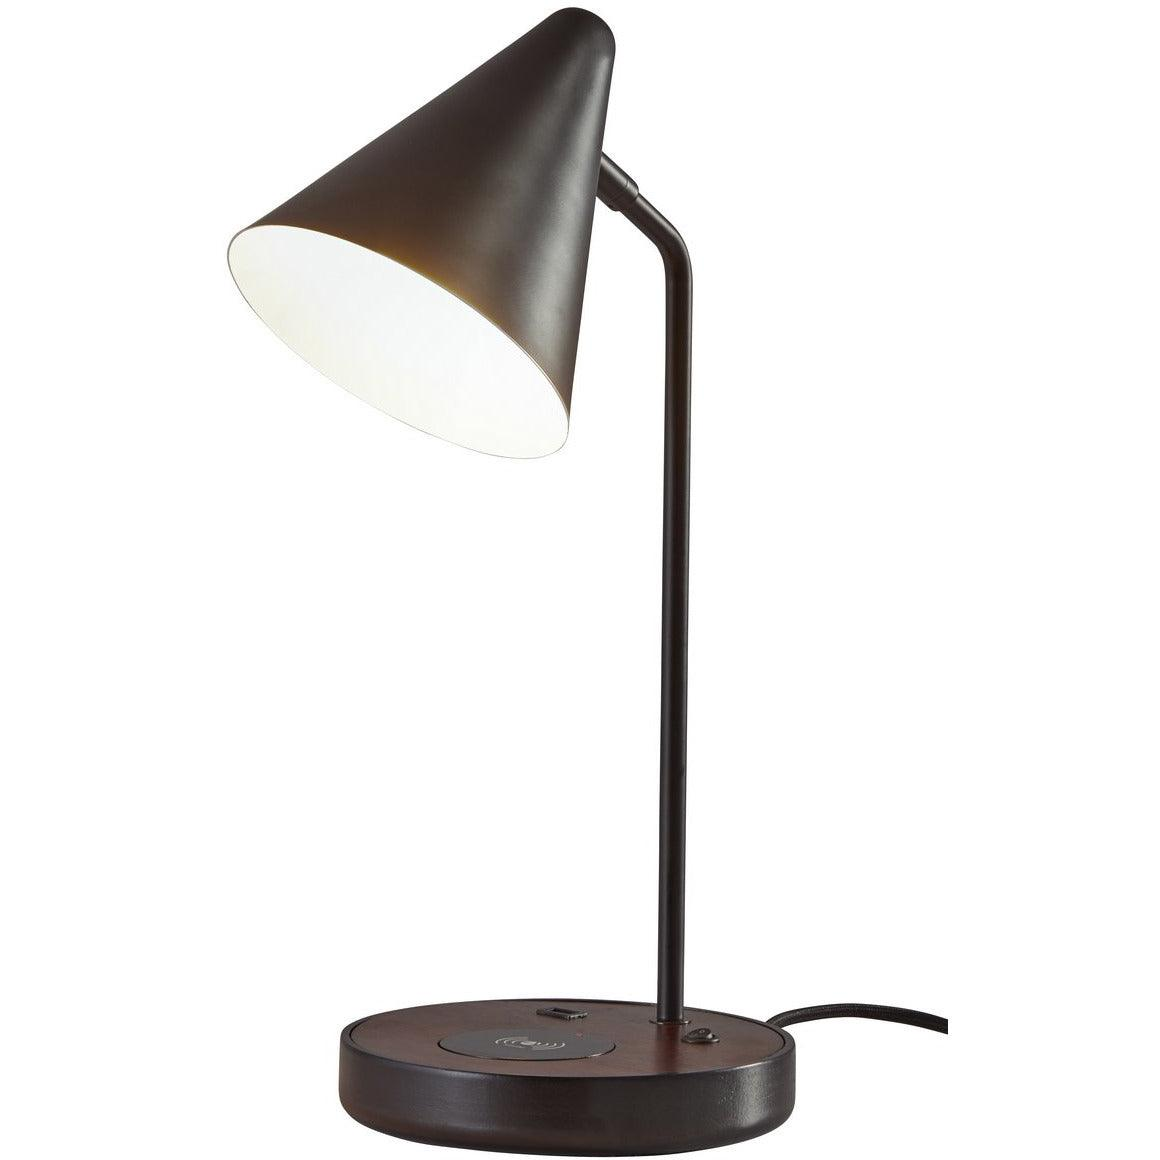 Adesso Home - 3688-01 - One Light Pendant - Oliver - Matte Black/Walnut Wood